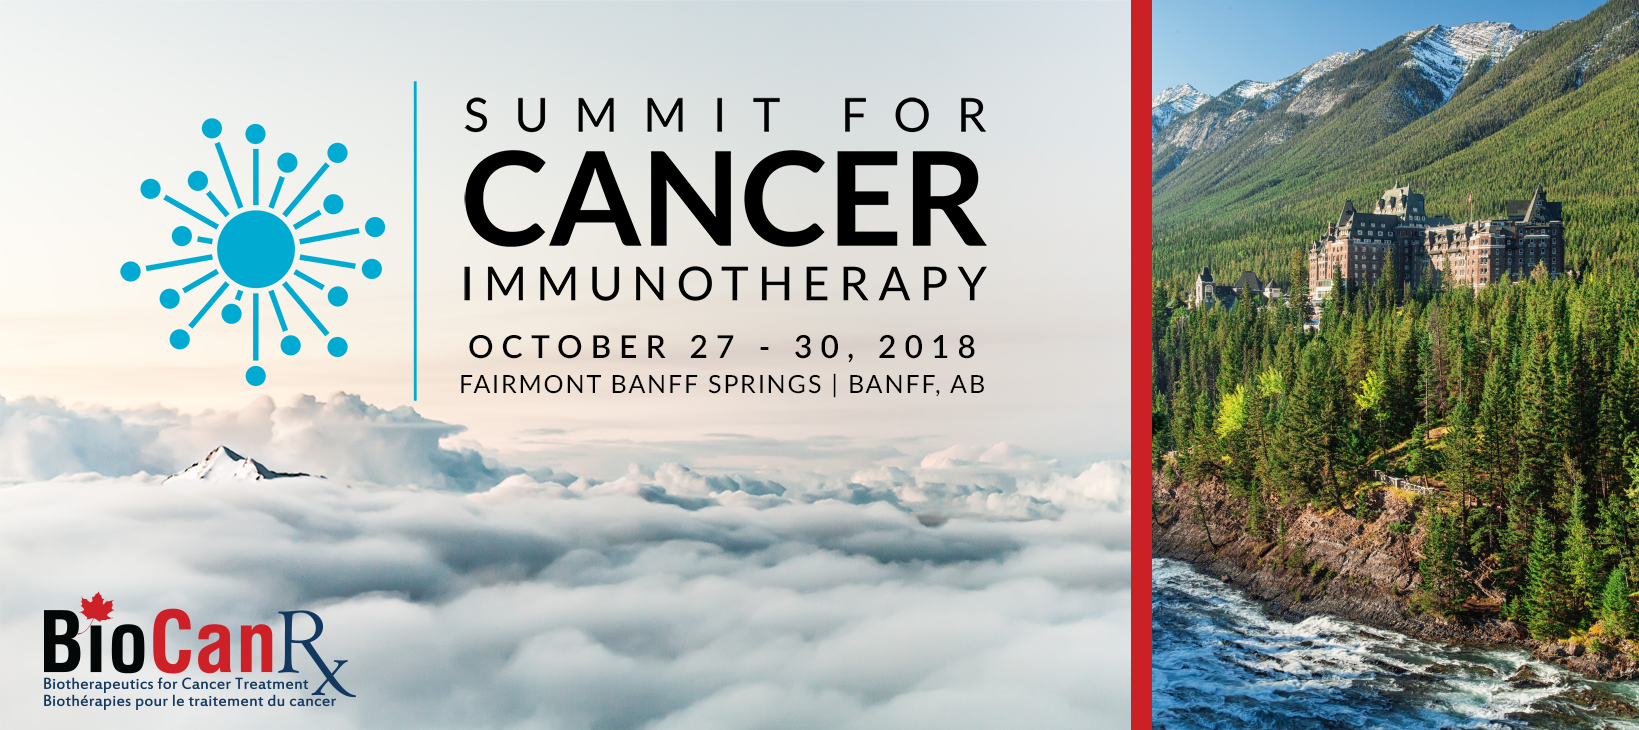 Save the Date! Summit For Cancer Immunotherapy 2018